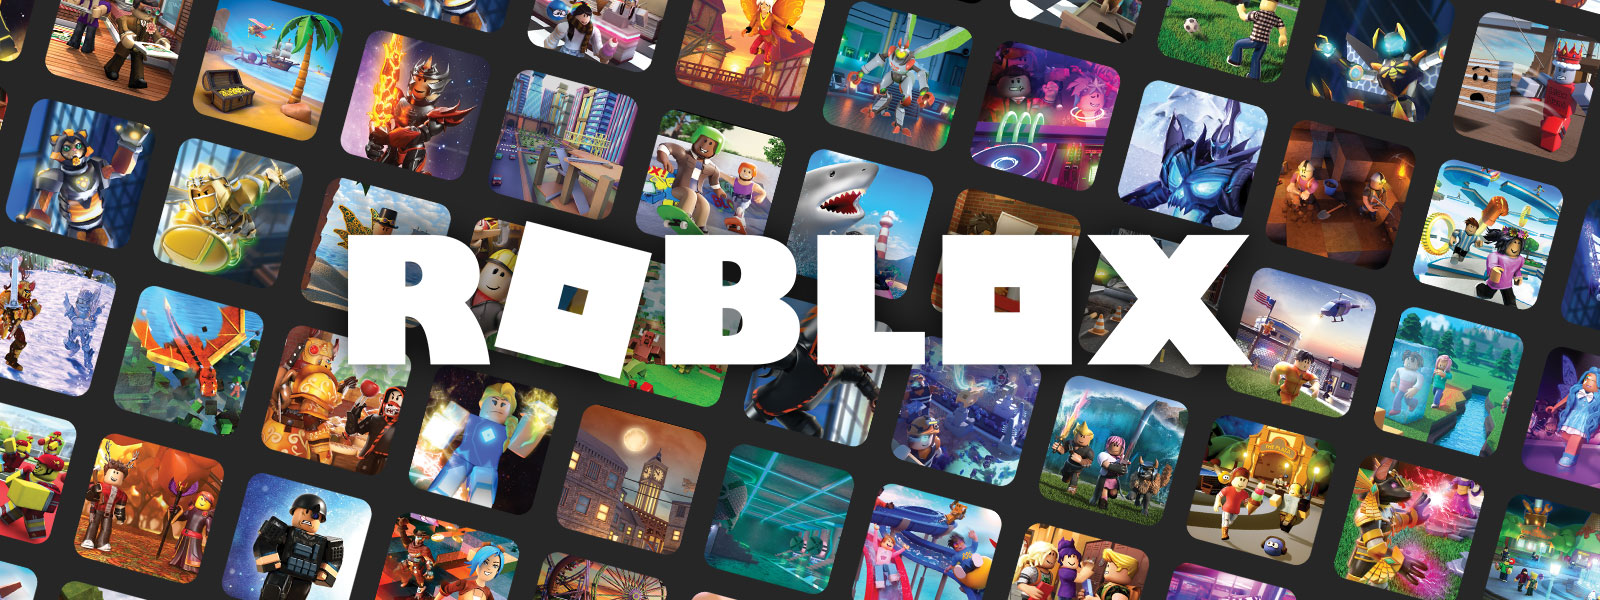 Roblox logo in front of a mosaic of game art.